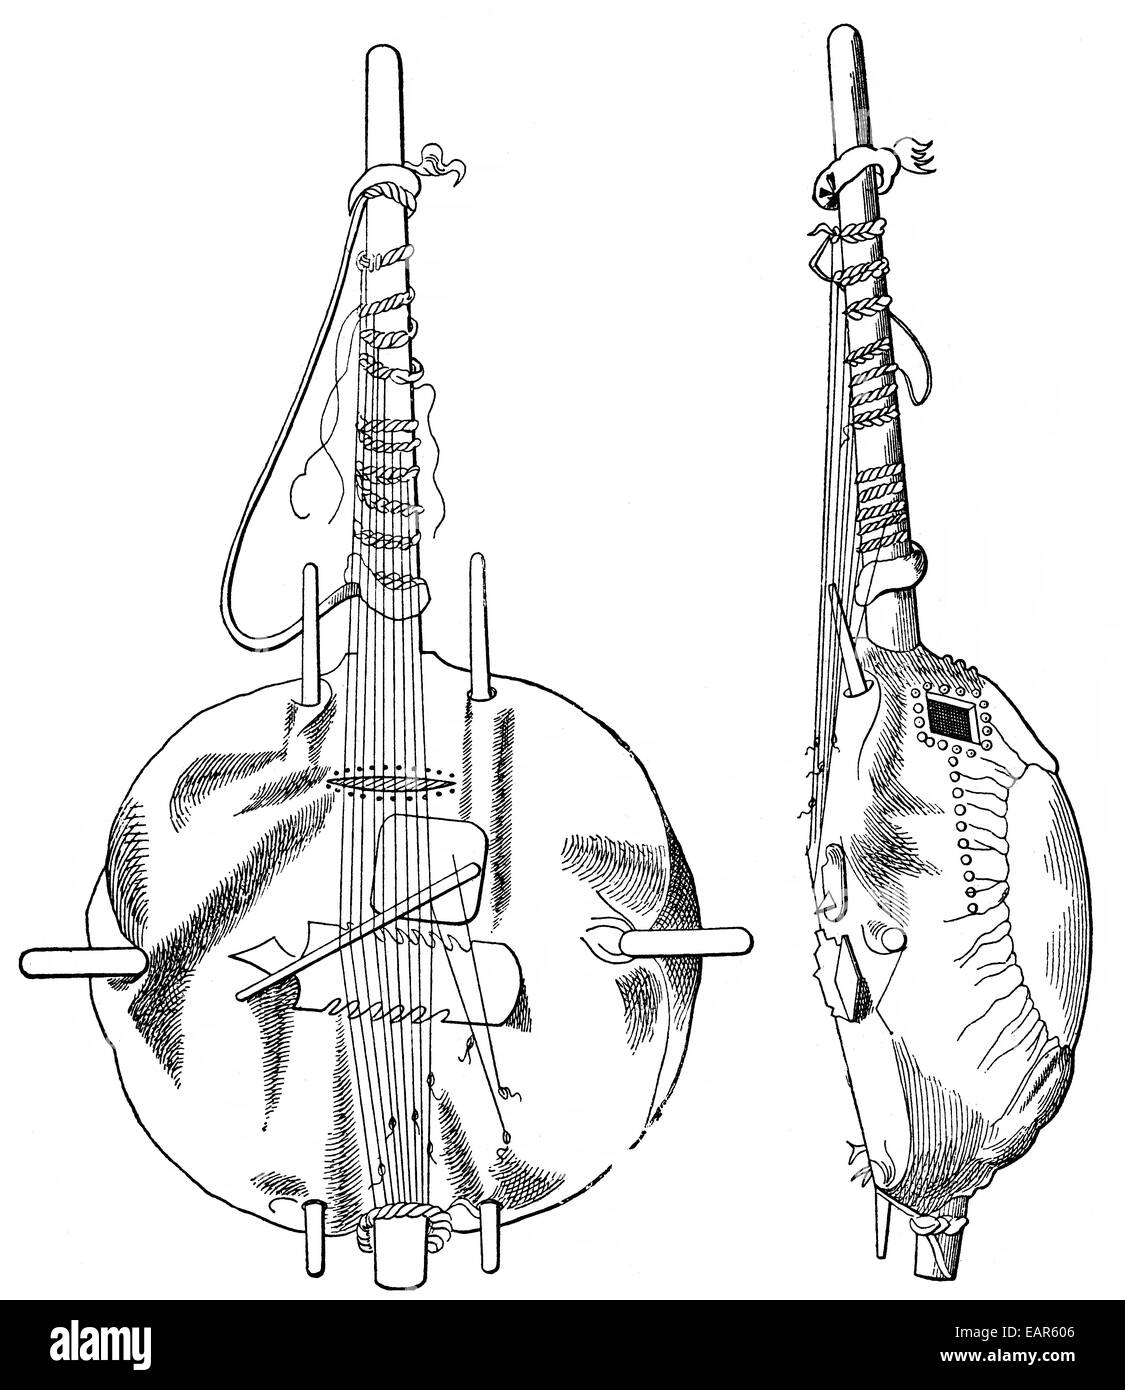 old African stringed instrument ,  ein altes, afrikanisches Saiteninstrument - Stock Image